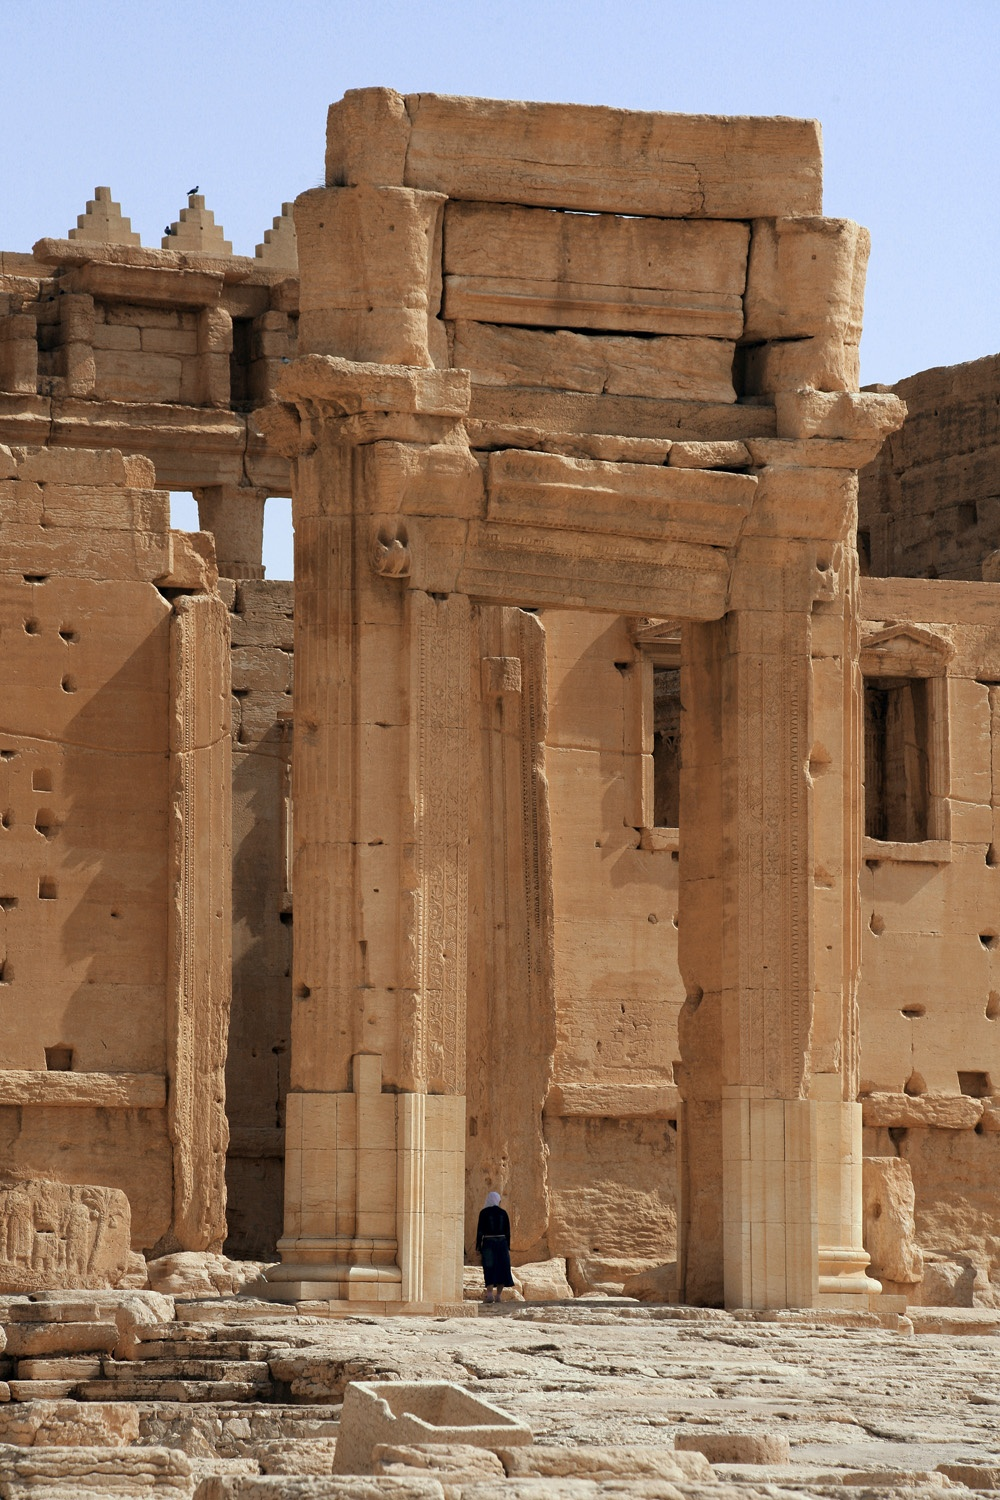 belentry Temple of Bel,  (destroyed 2015),  Palmyra, Syria, 2008